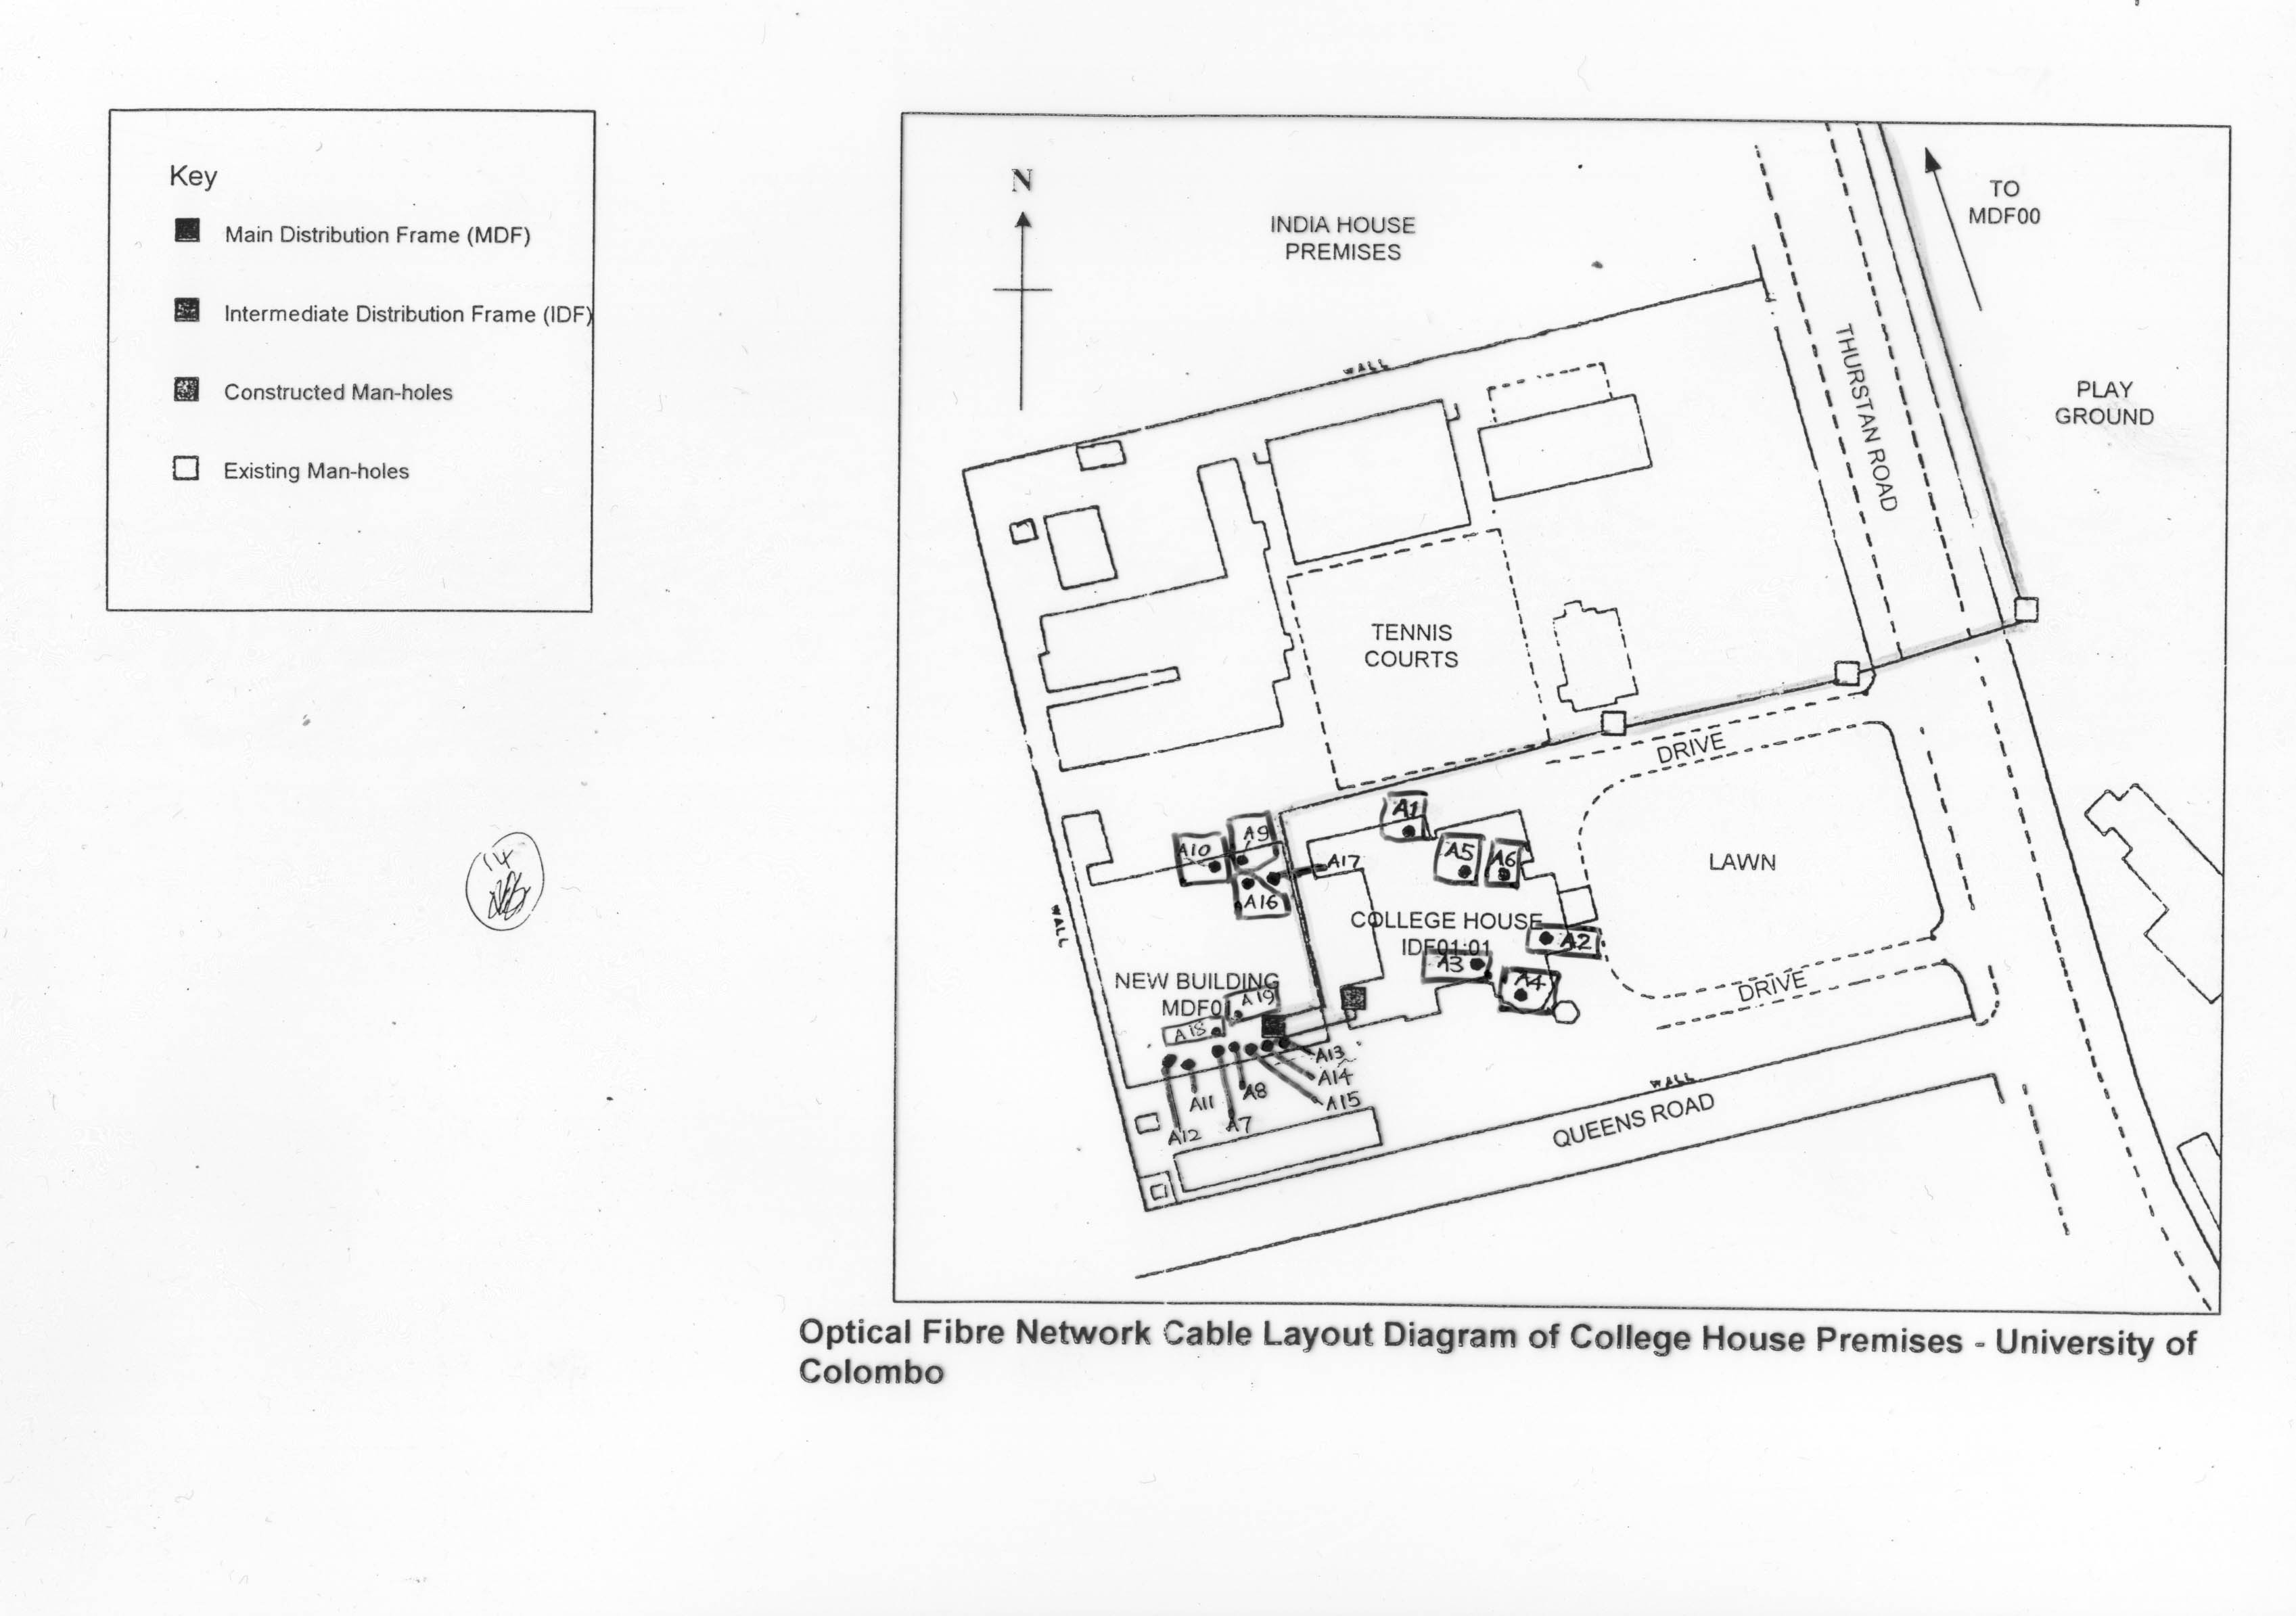 telephone network diagram layout how are volcanoes formed cable of faculty arts